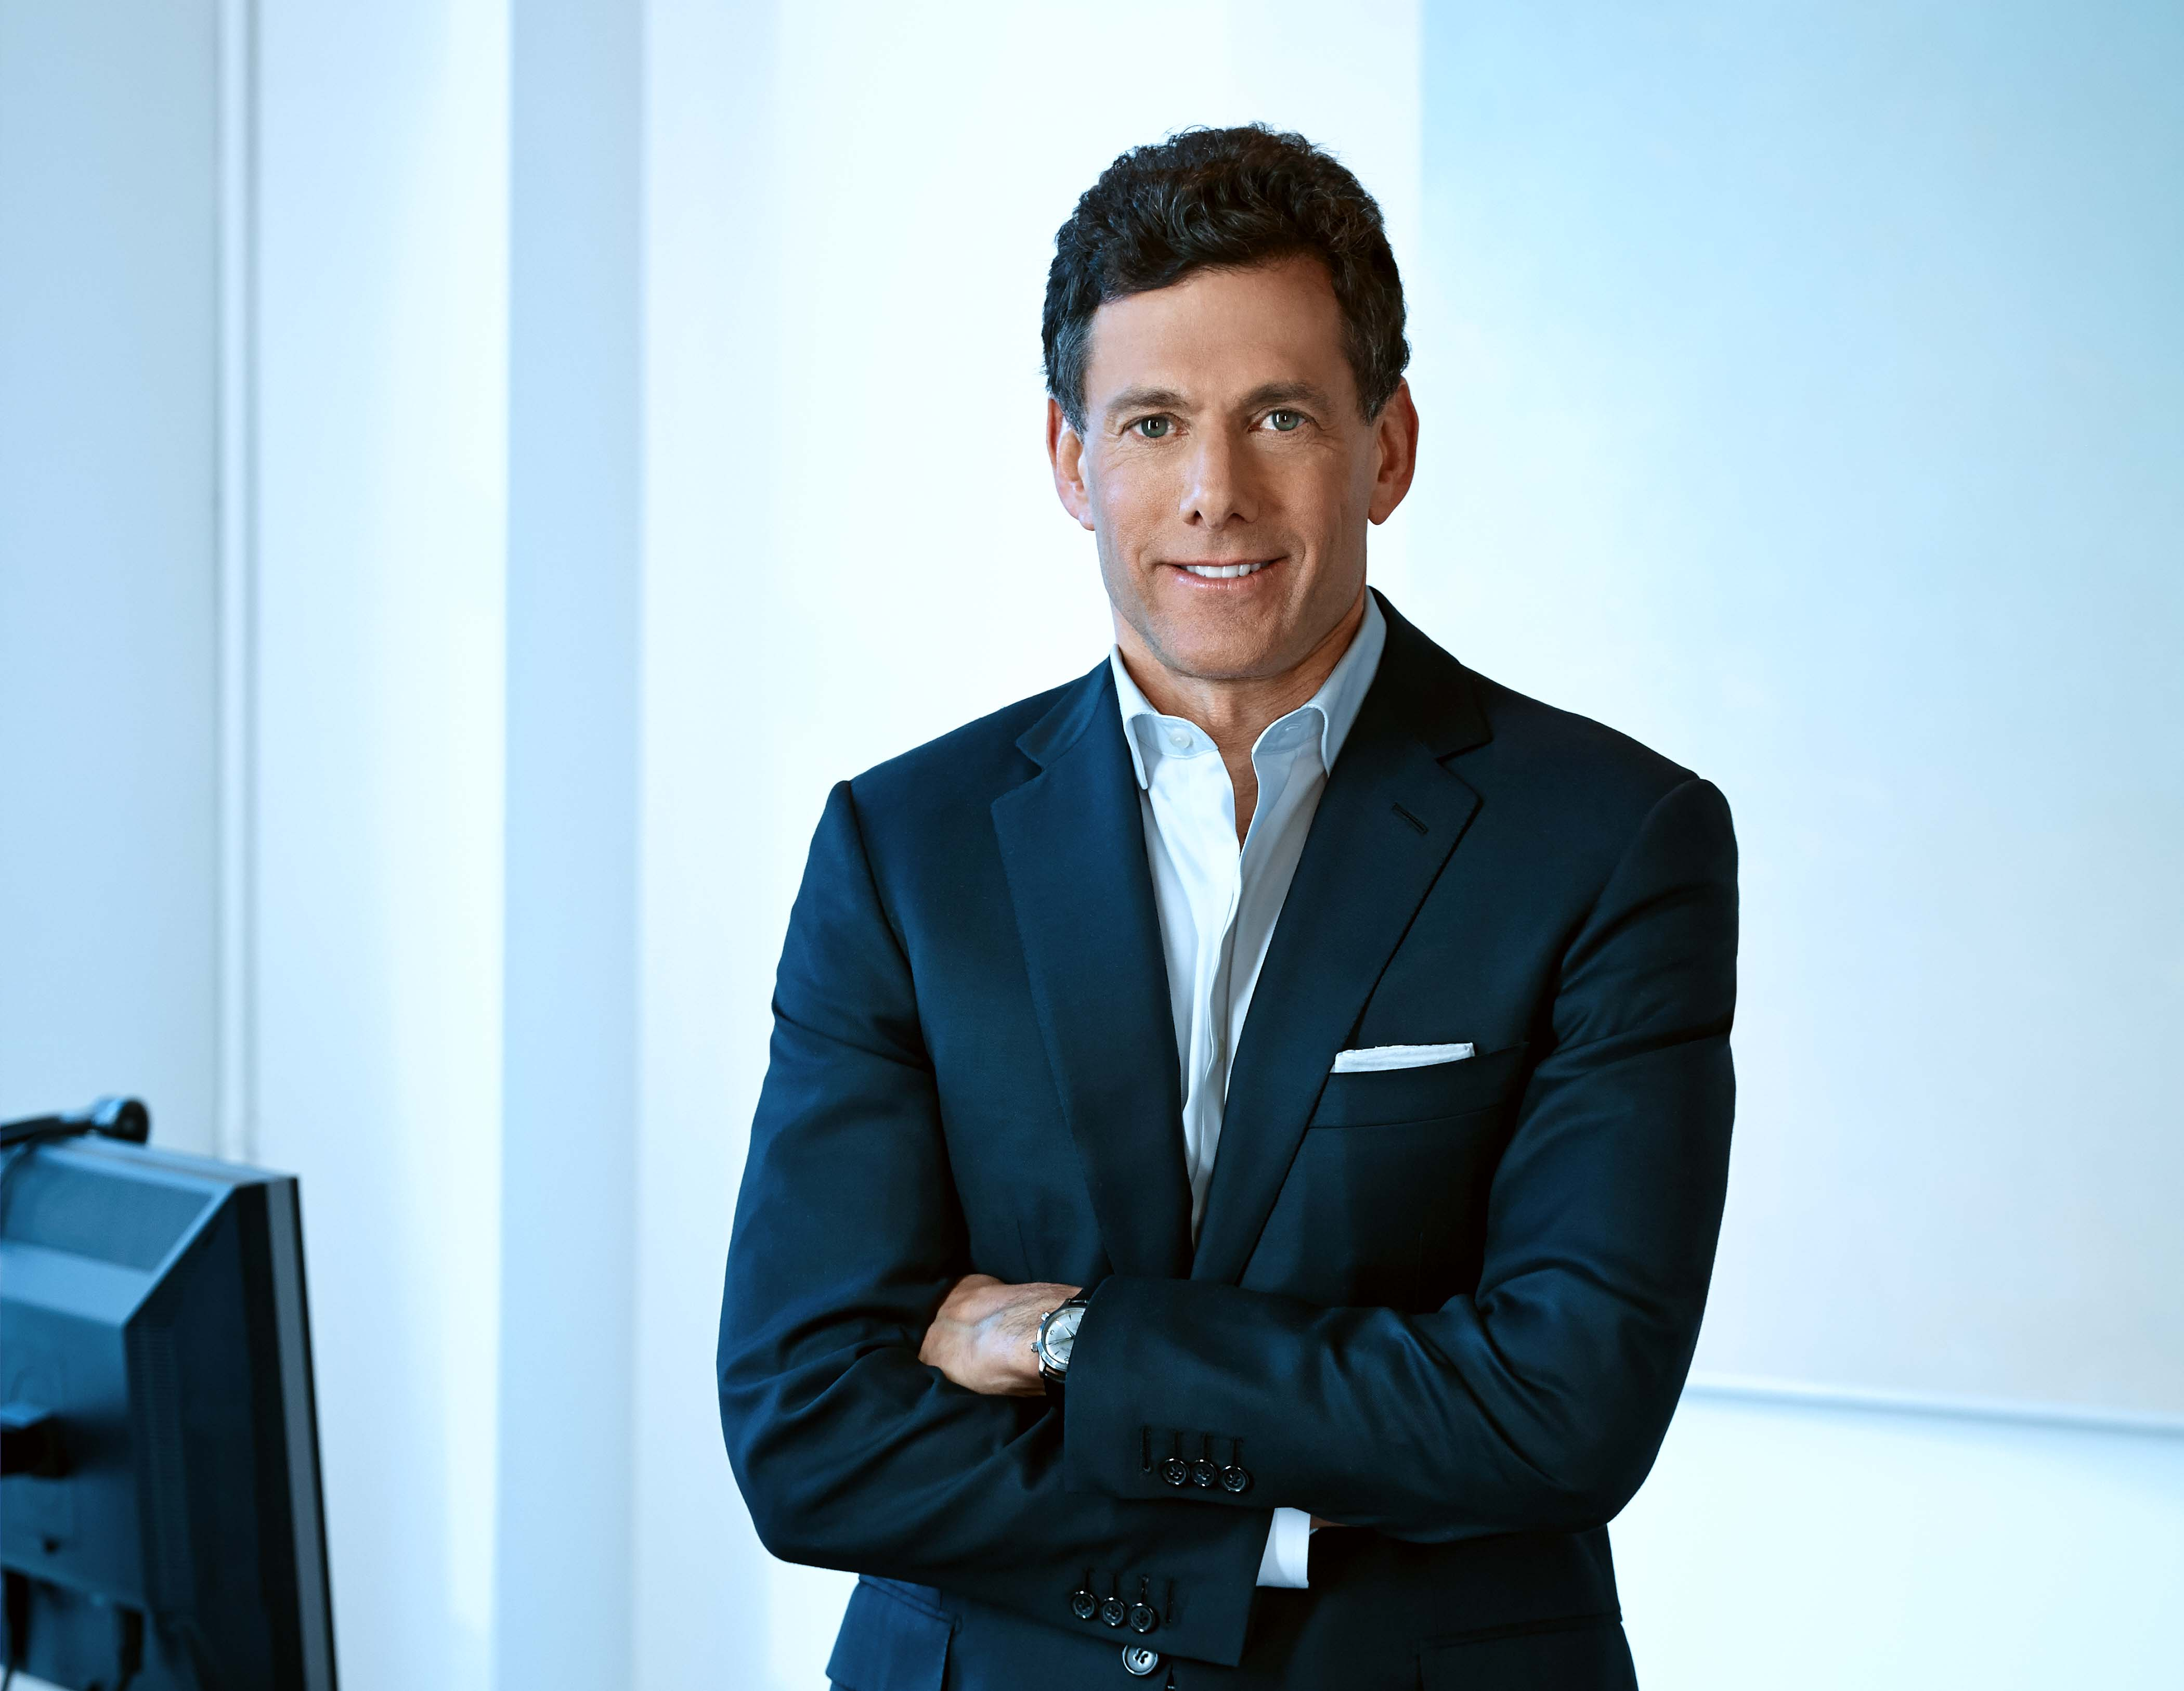 Strauss Zelnick, Chairman and CEO of Take Two Interactive